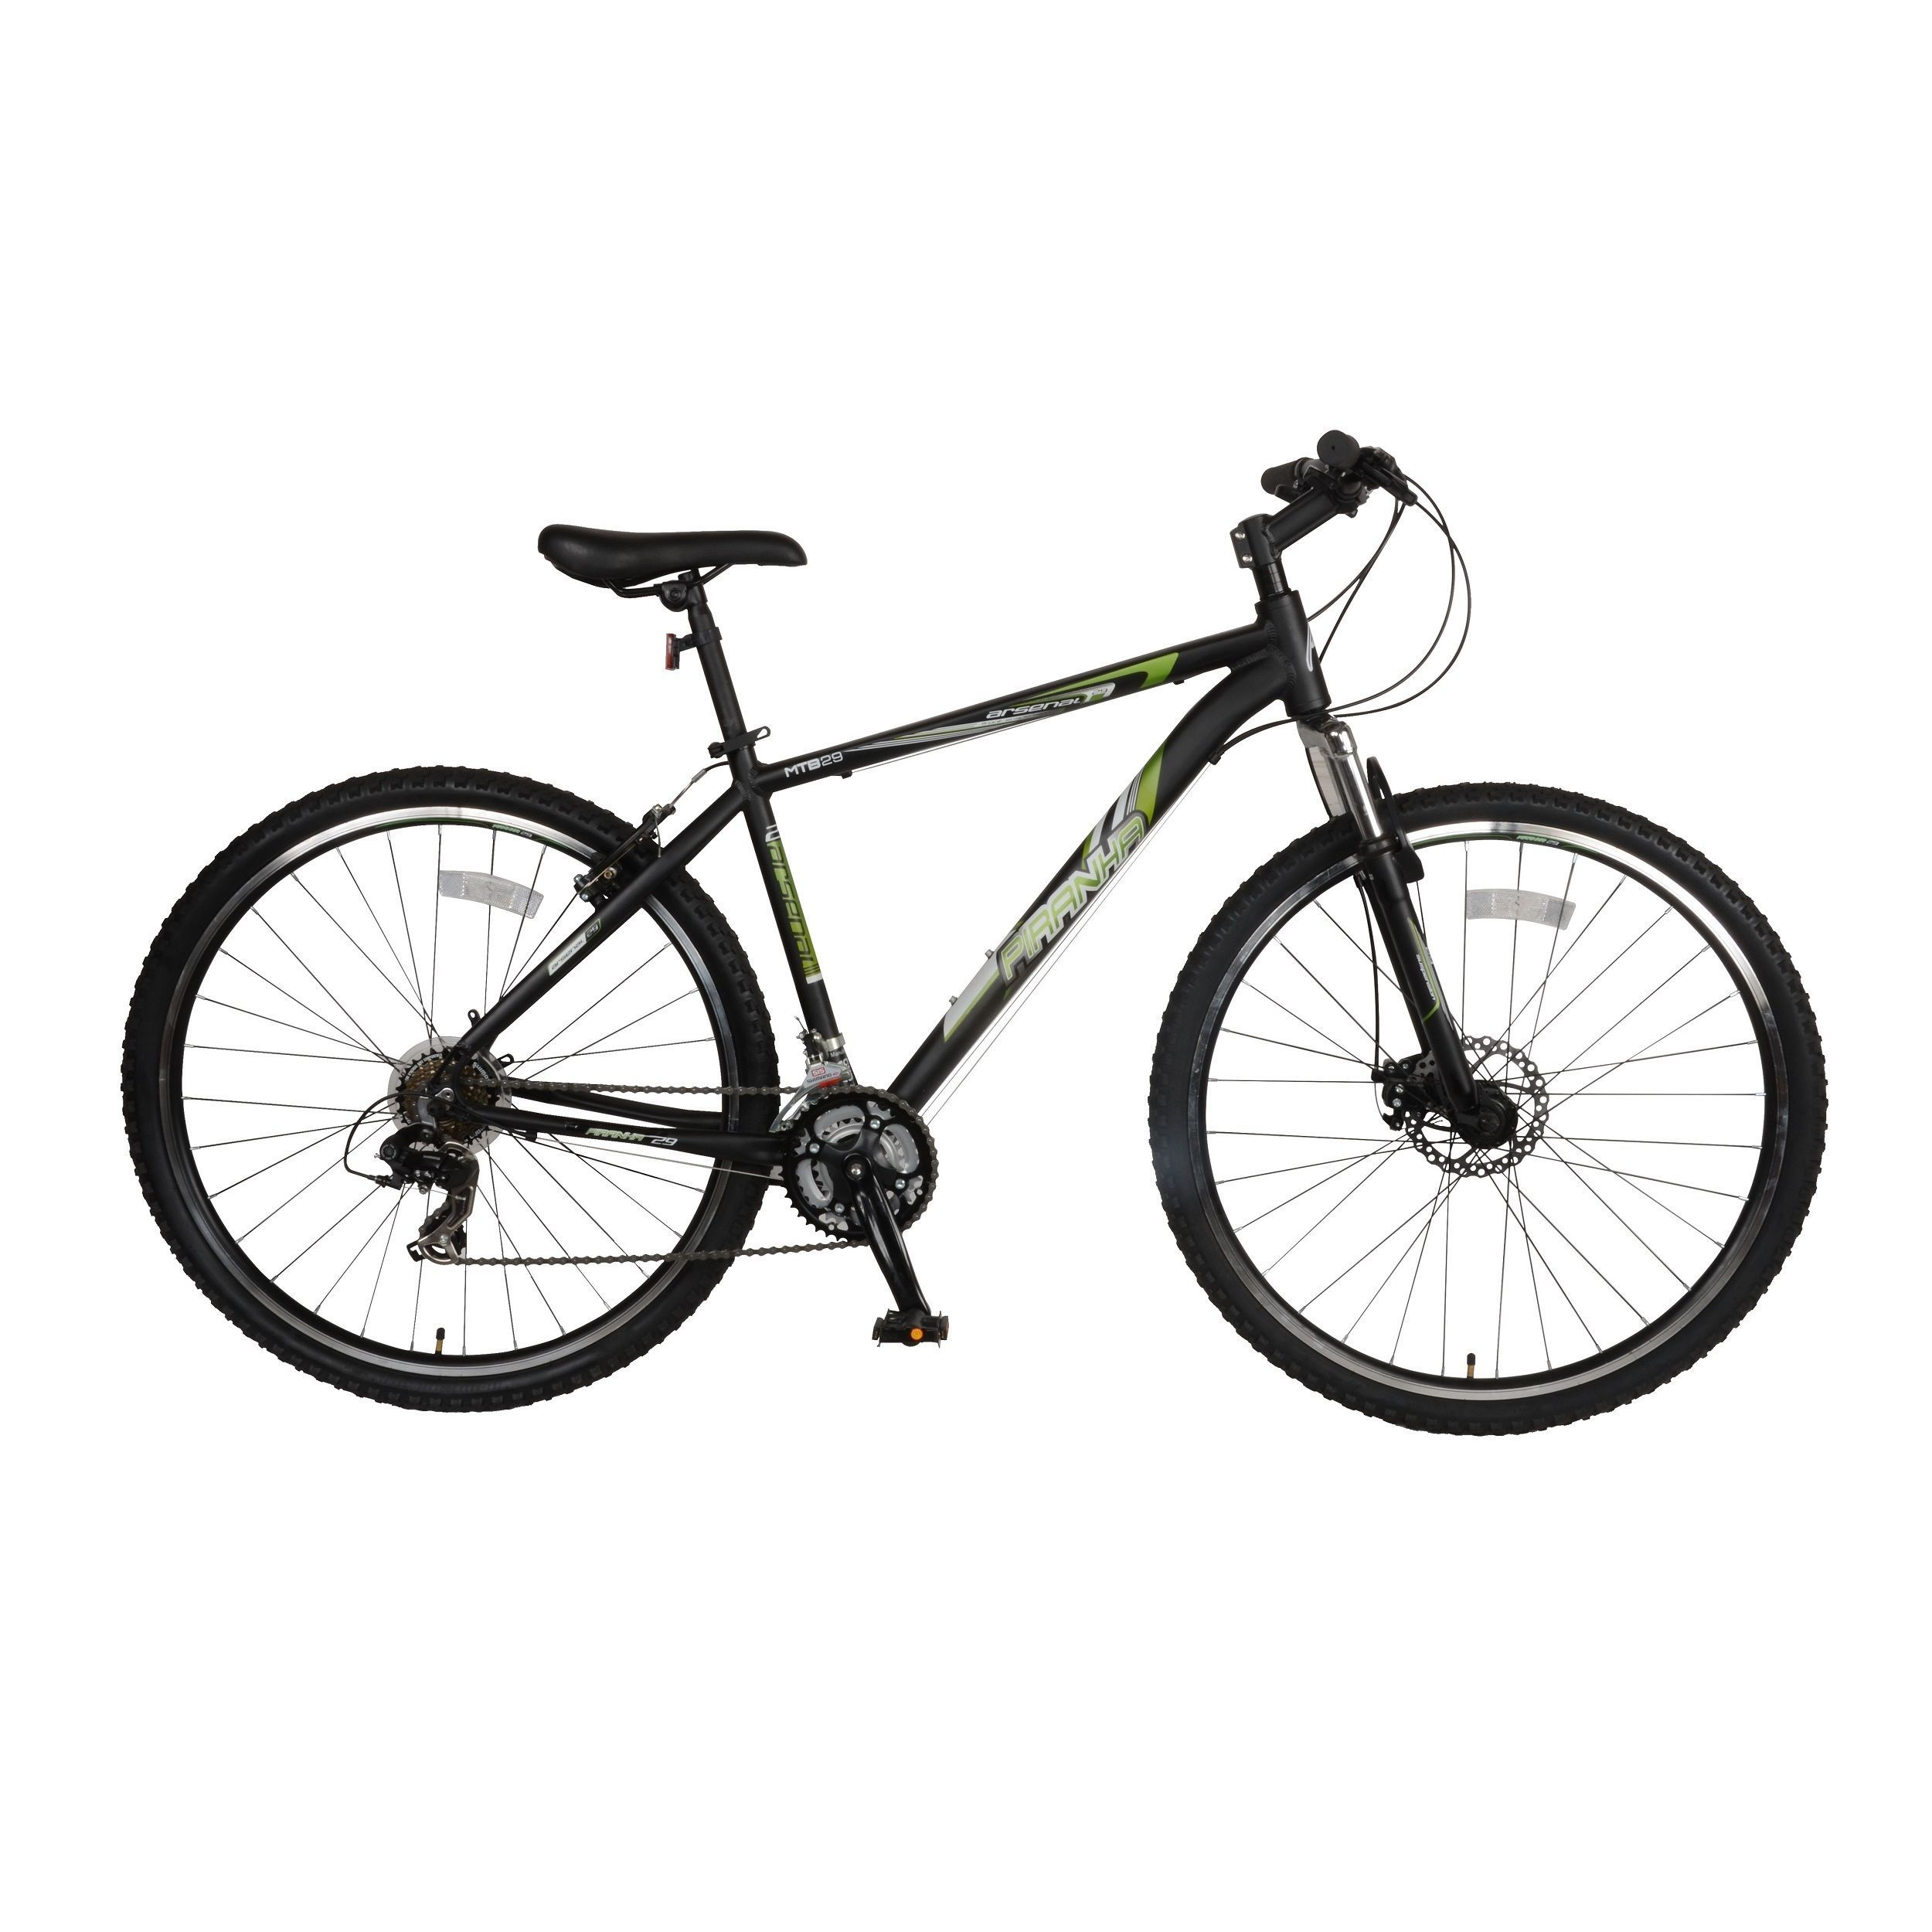 Piranha Men S Green Arsenal 1 7 Hardtail Mountain Bicycle With 29